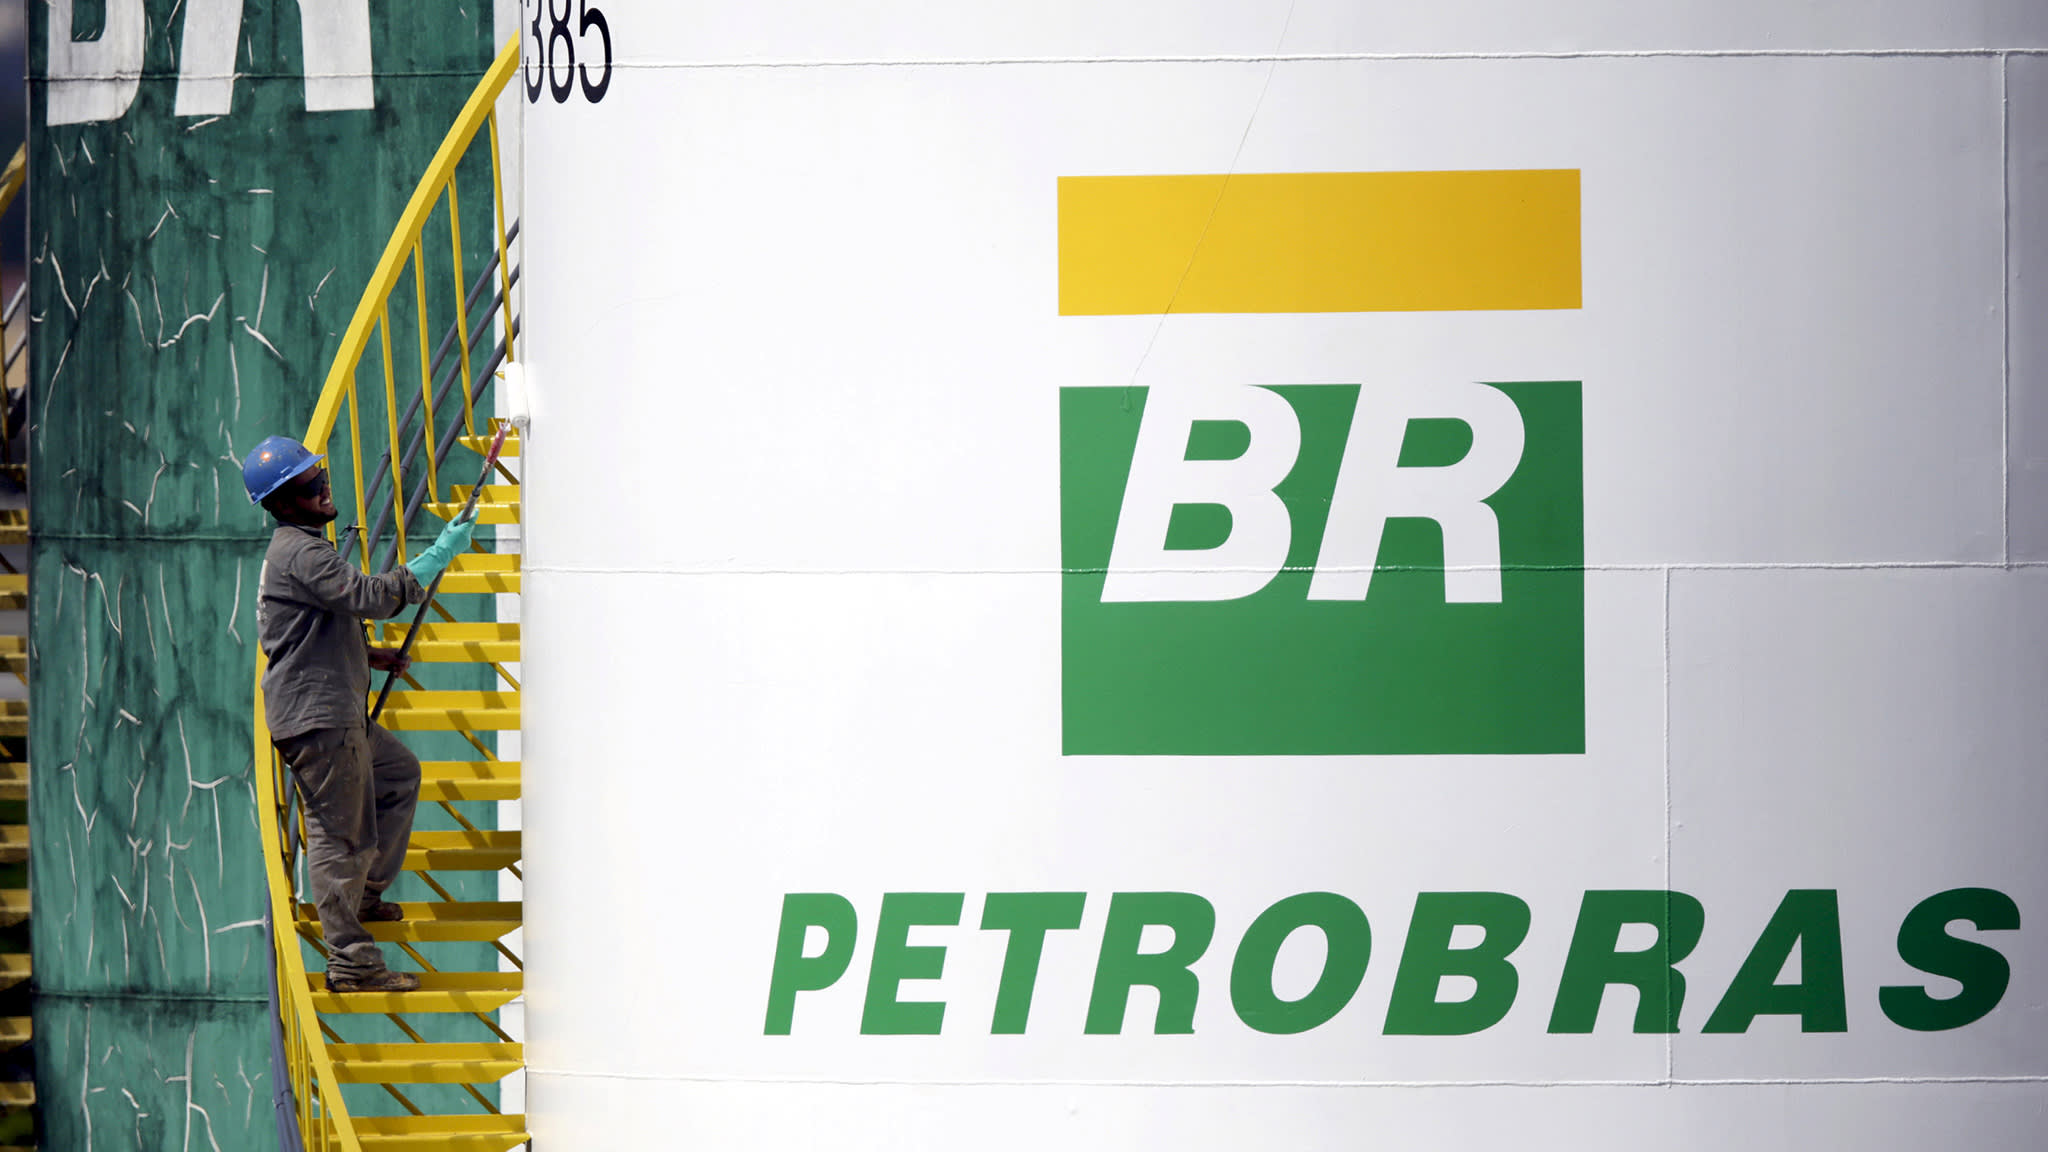 Petrobras to pay $853m to resolve bribery charges